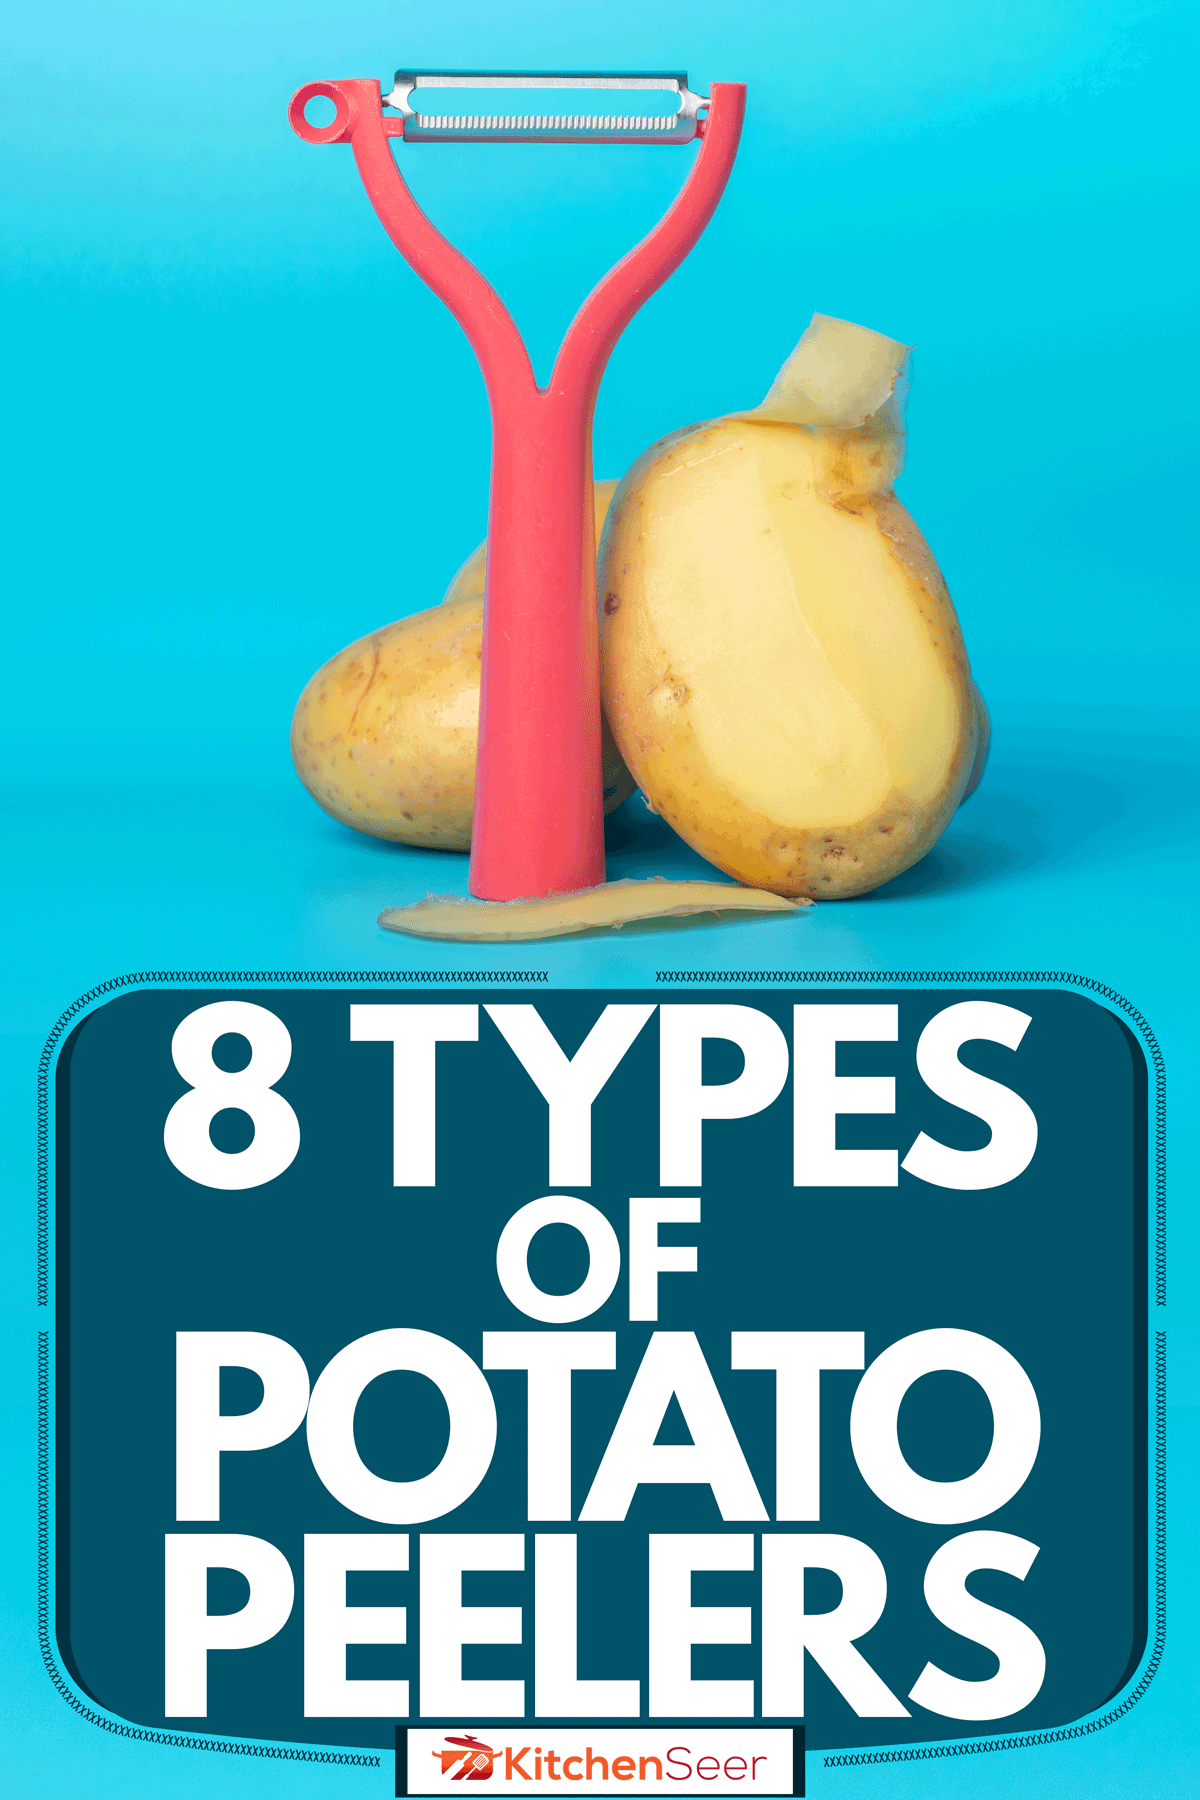 Two potatoes with a peeler on a blue background, 8 Types of Potato Peelers